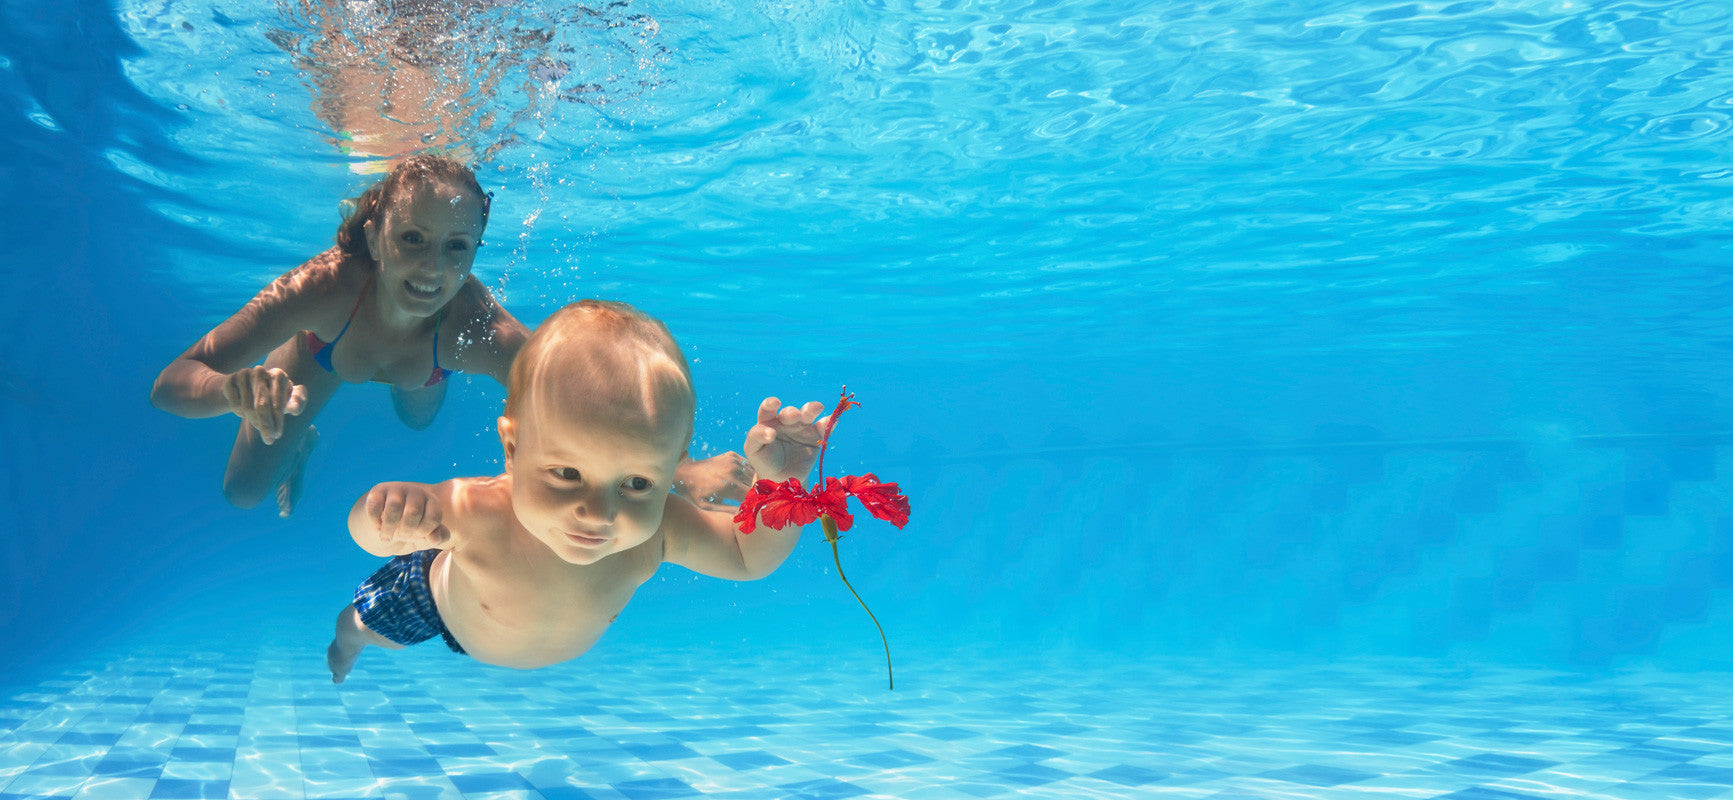 We'll make your pool fresh, clean and ready for fun.